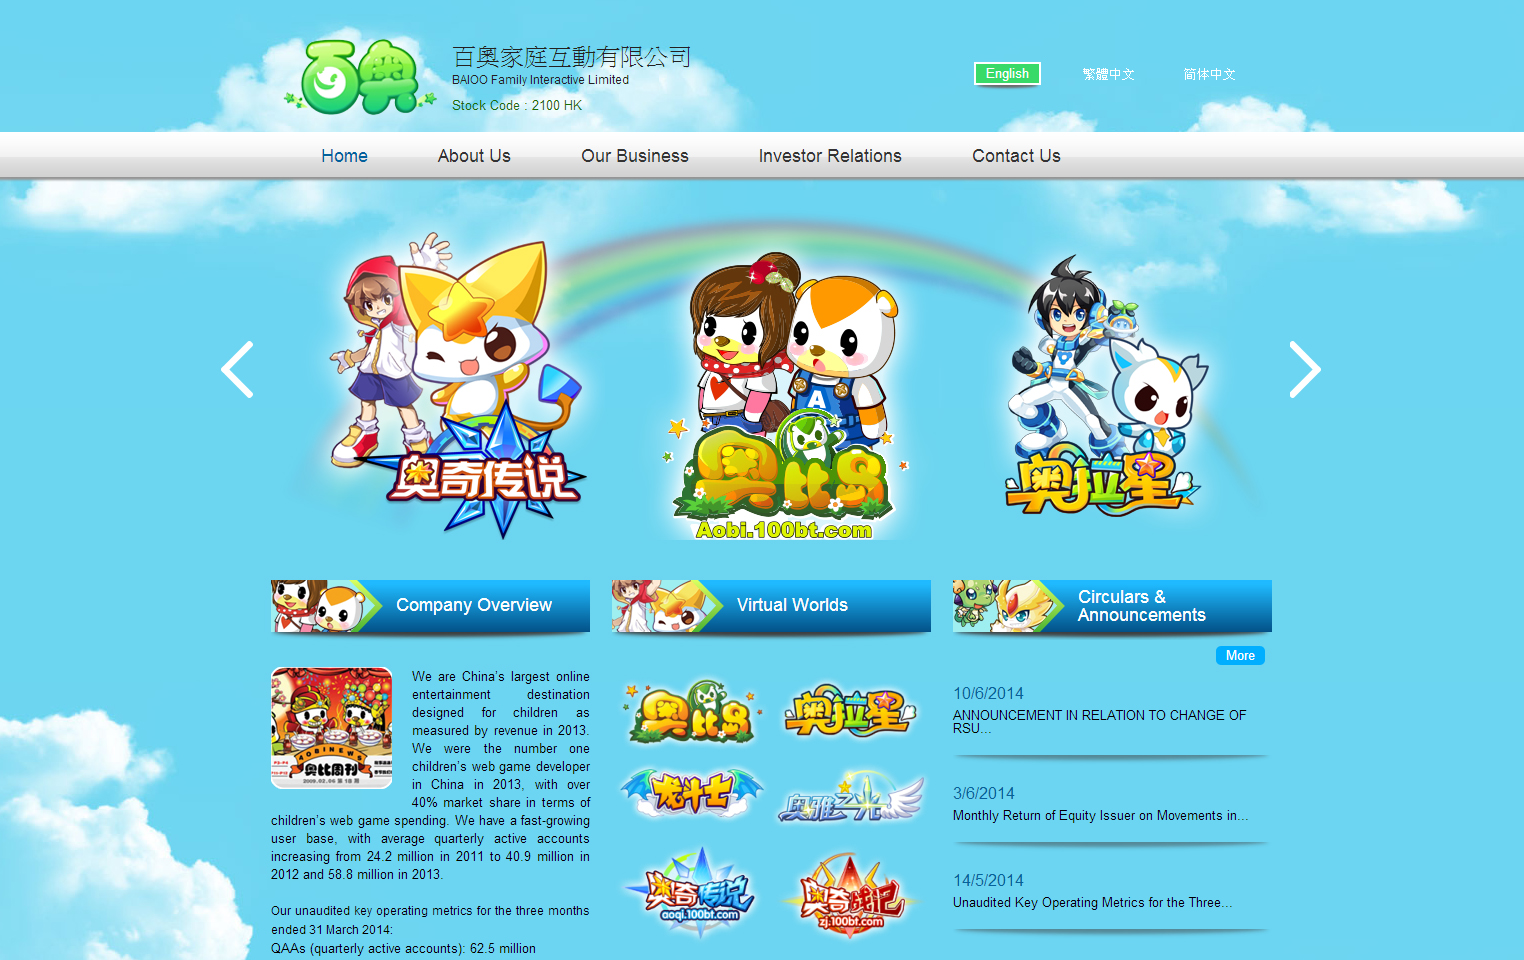 baioo.com.hk website design